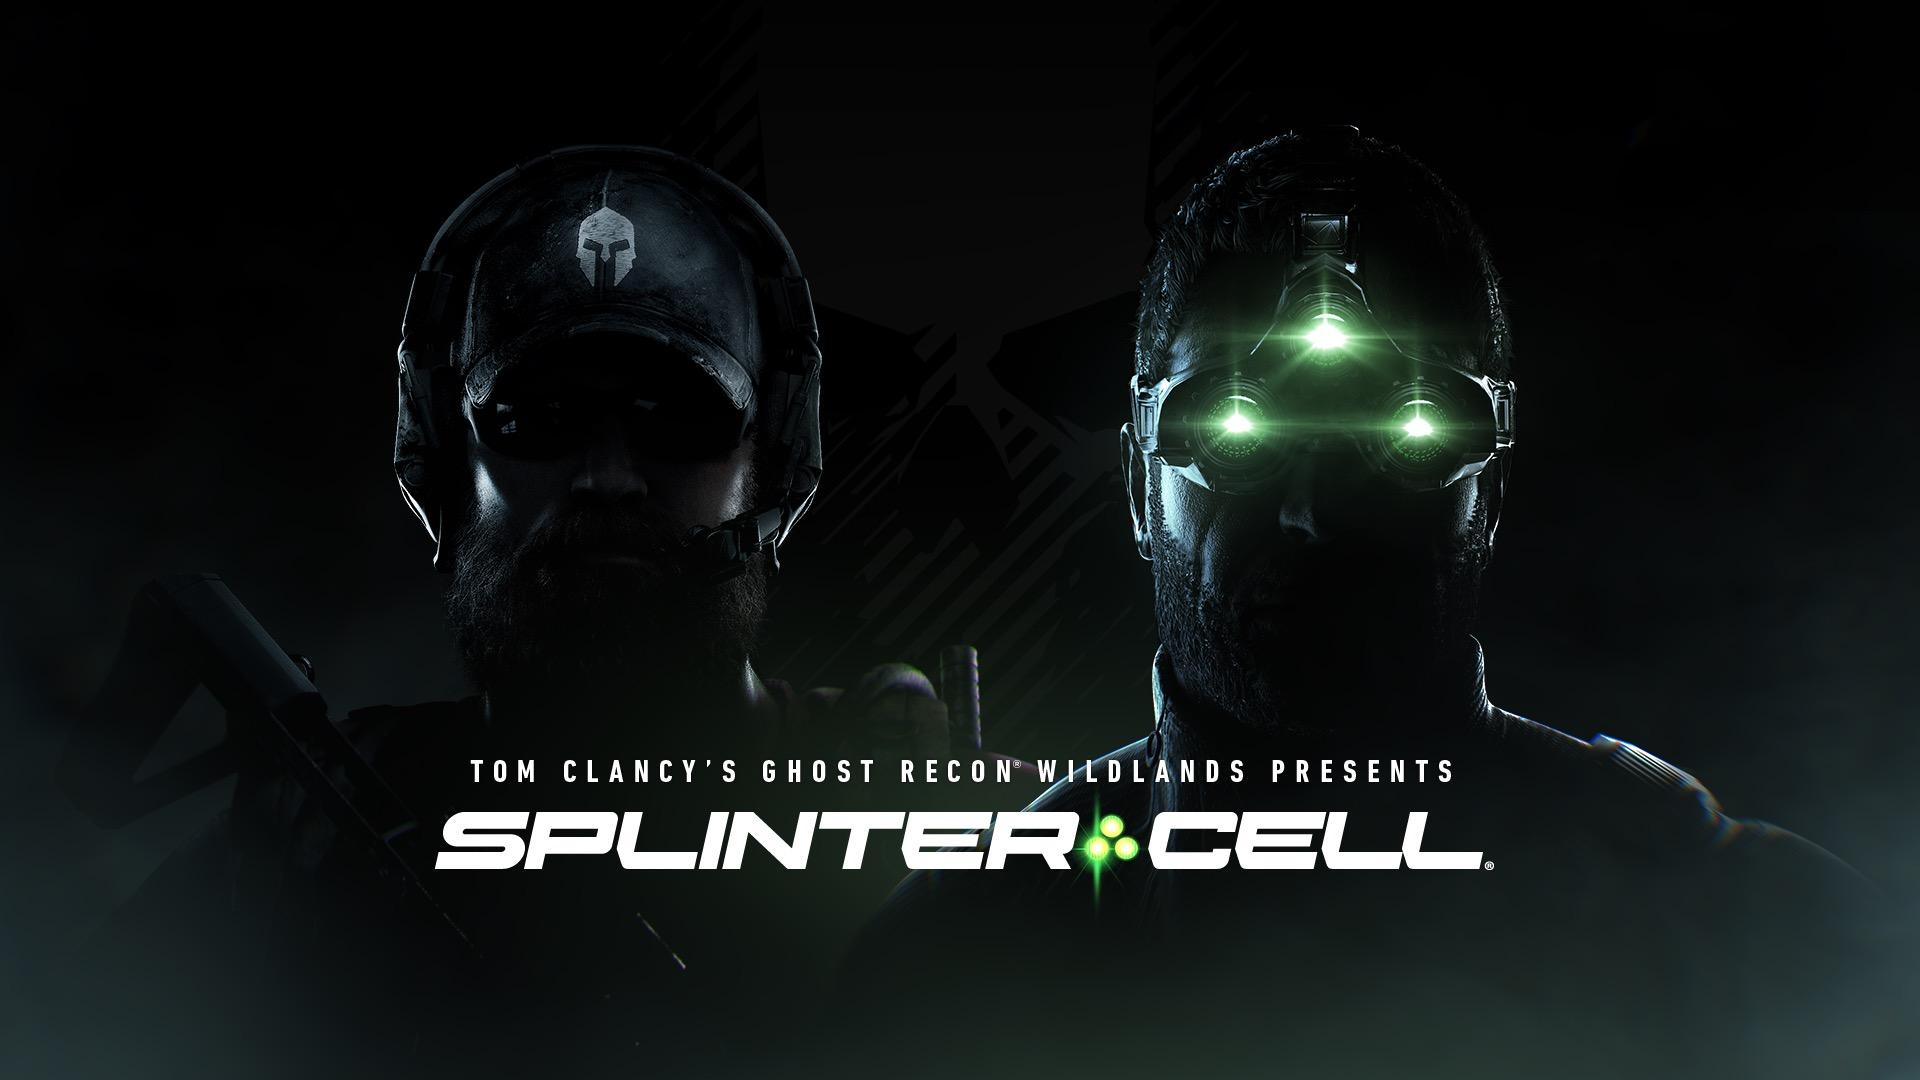 Ghost Recon Wildlands Free Splinter Cell-Themed Mission Detailed